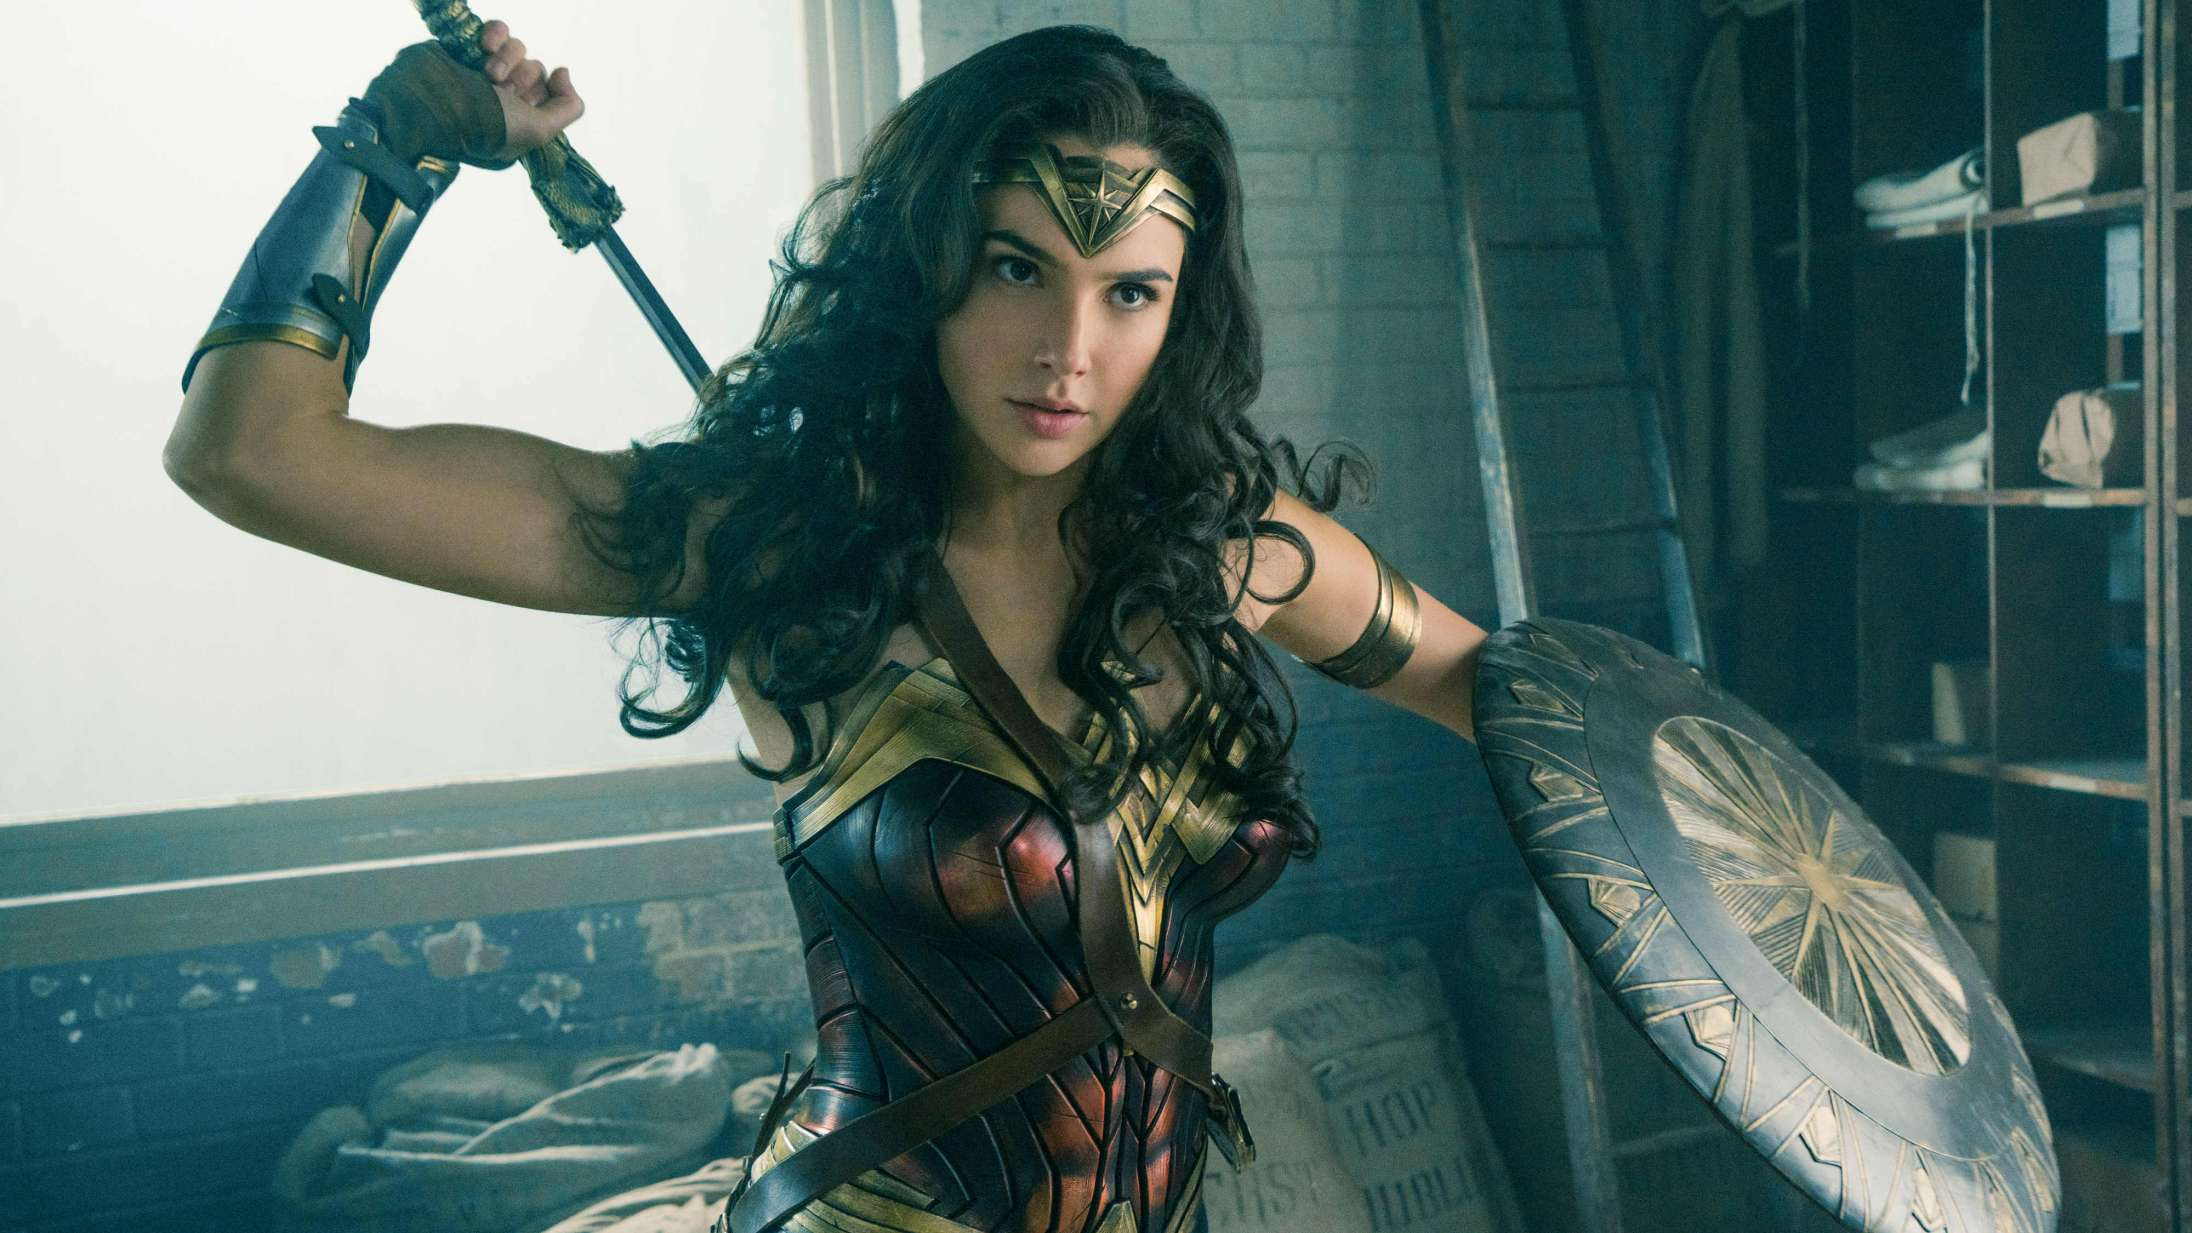 'Wonder Woman'-instruktør Patty Jenkins lå i »intern krig« med Warner Bros. over superheltefilmen